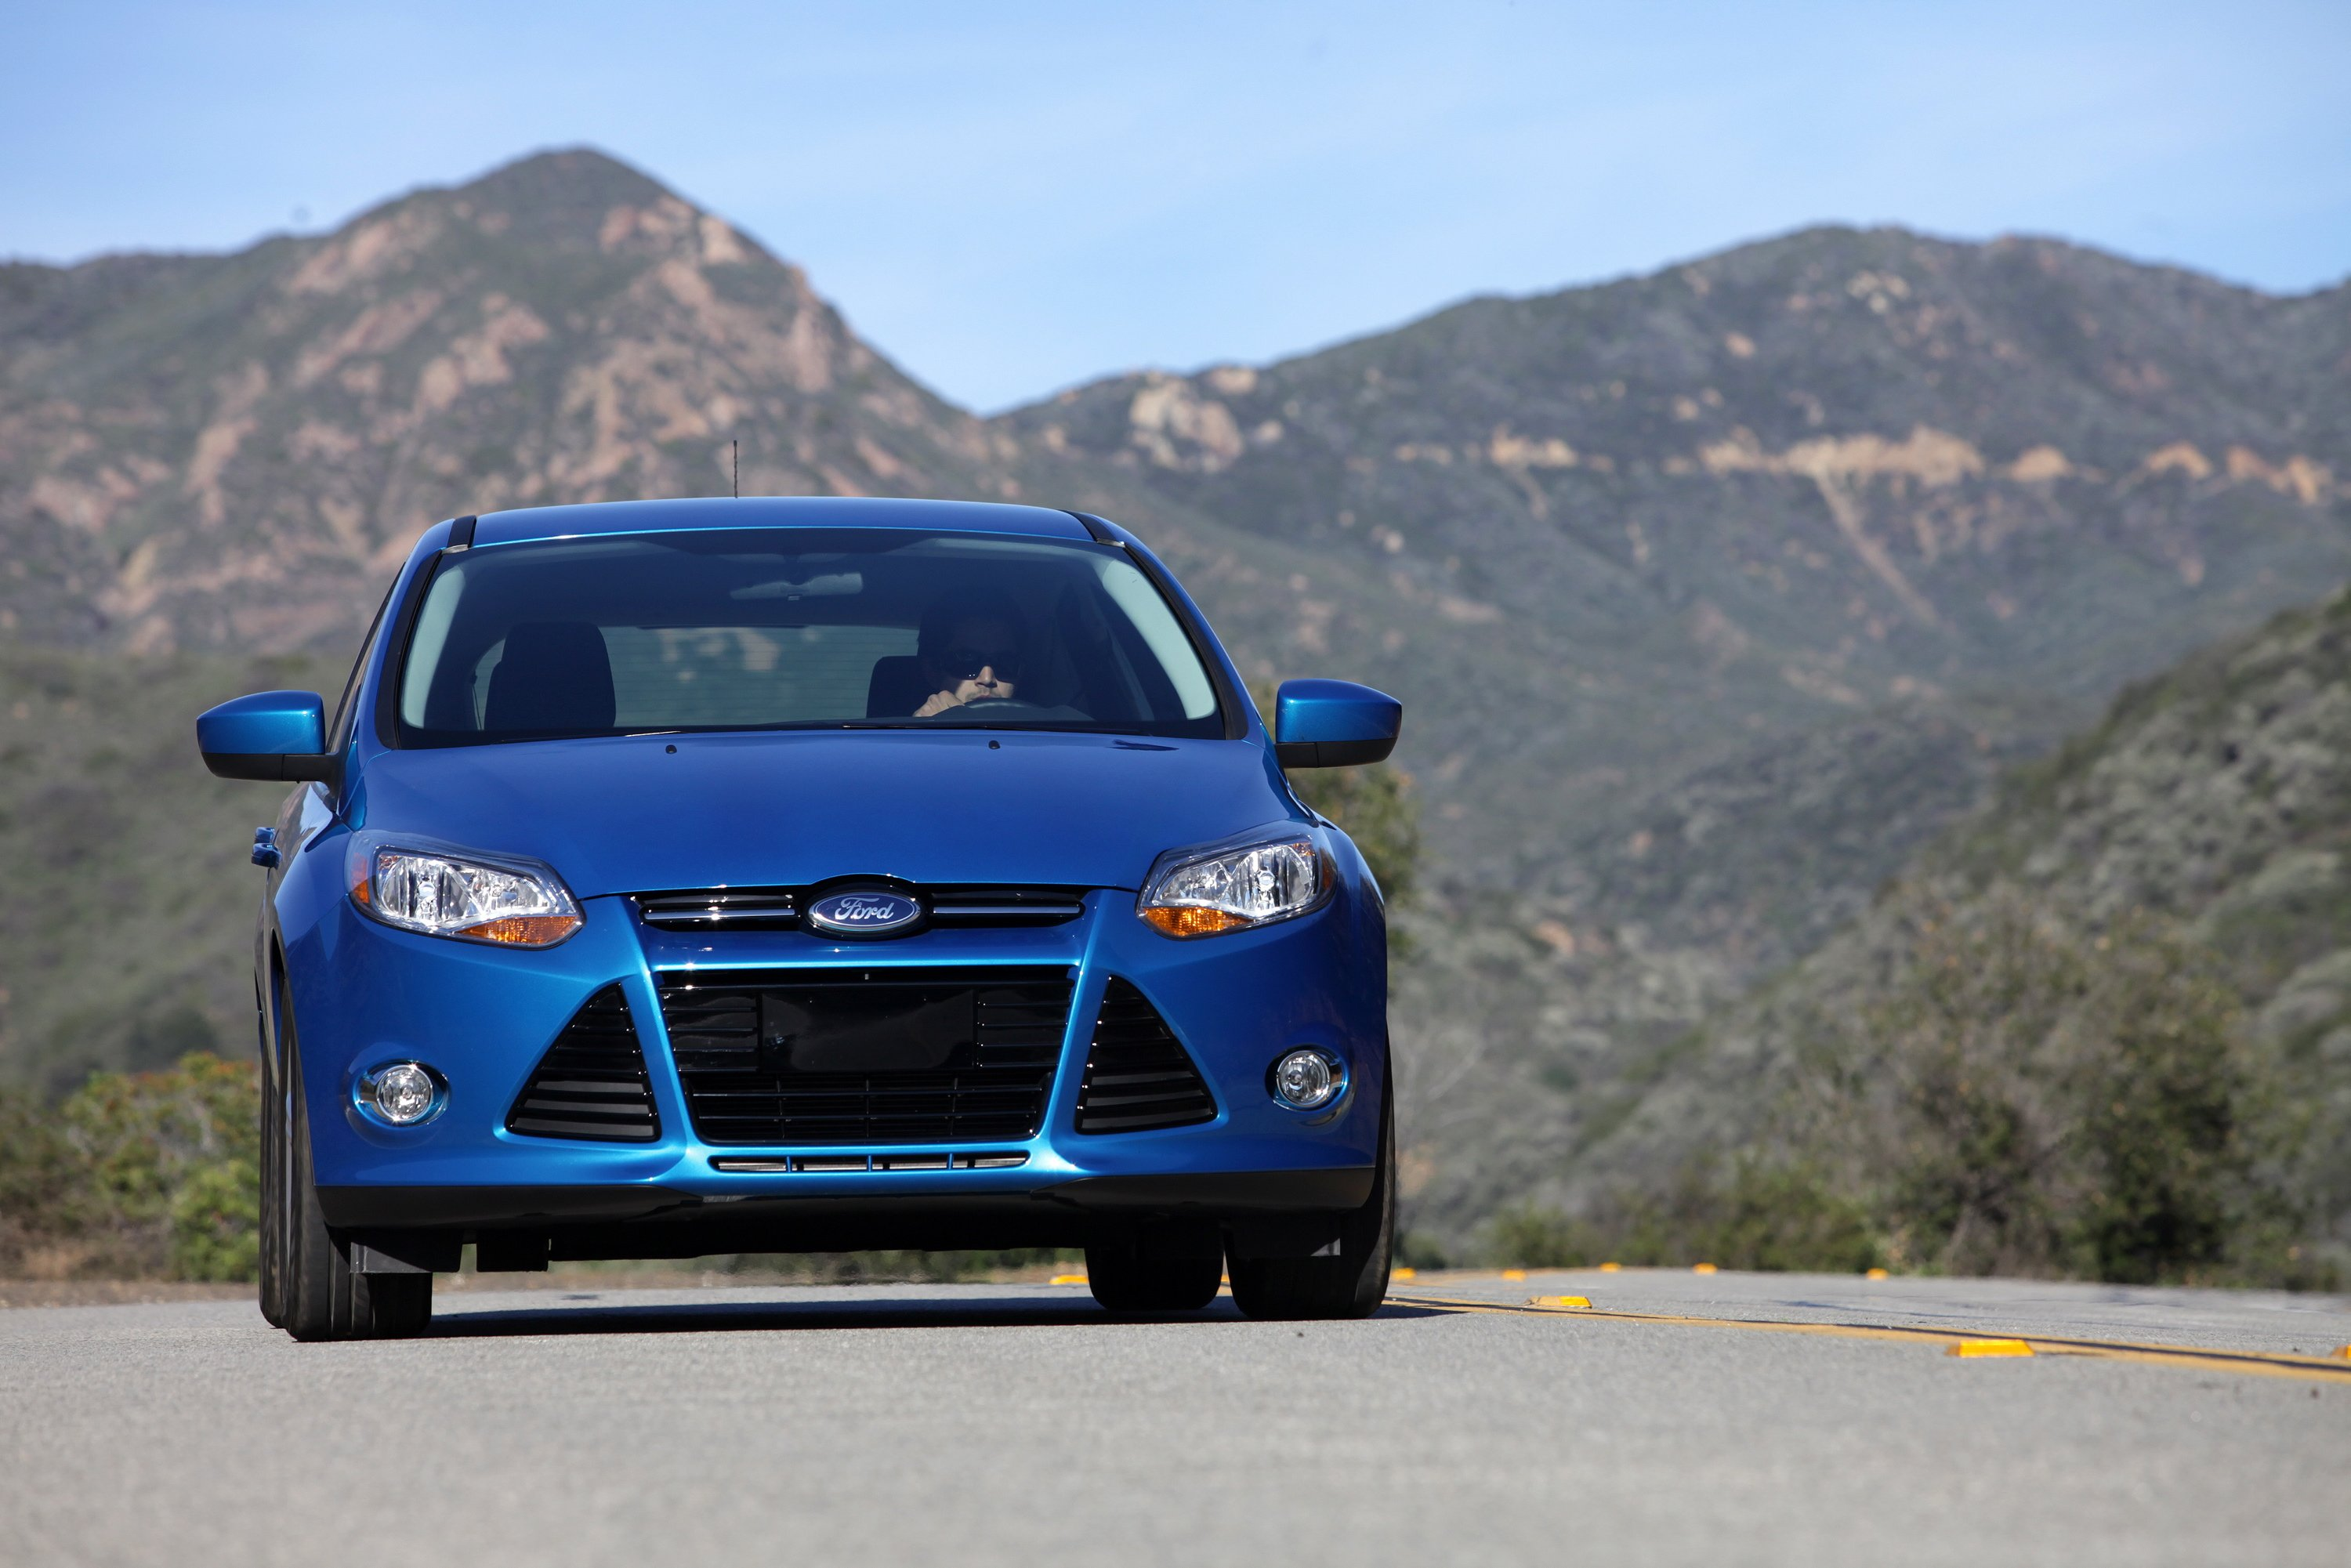 Driven 2012 Ford Focus Hatchback Speed Sport Life